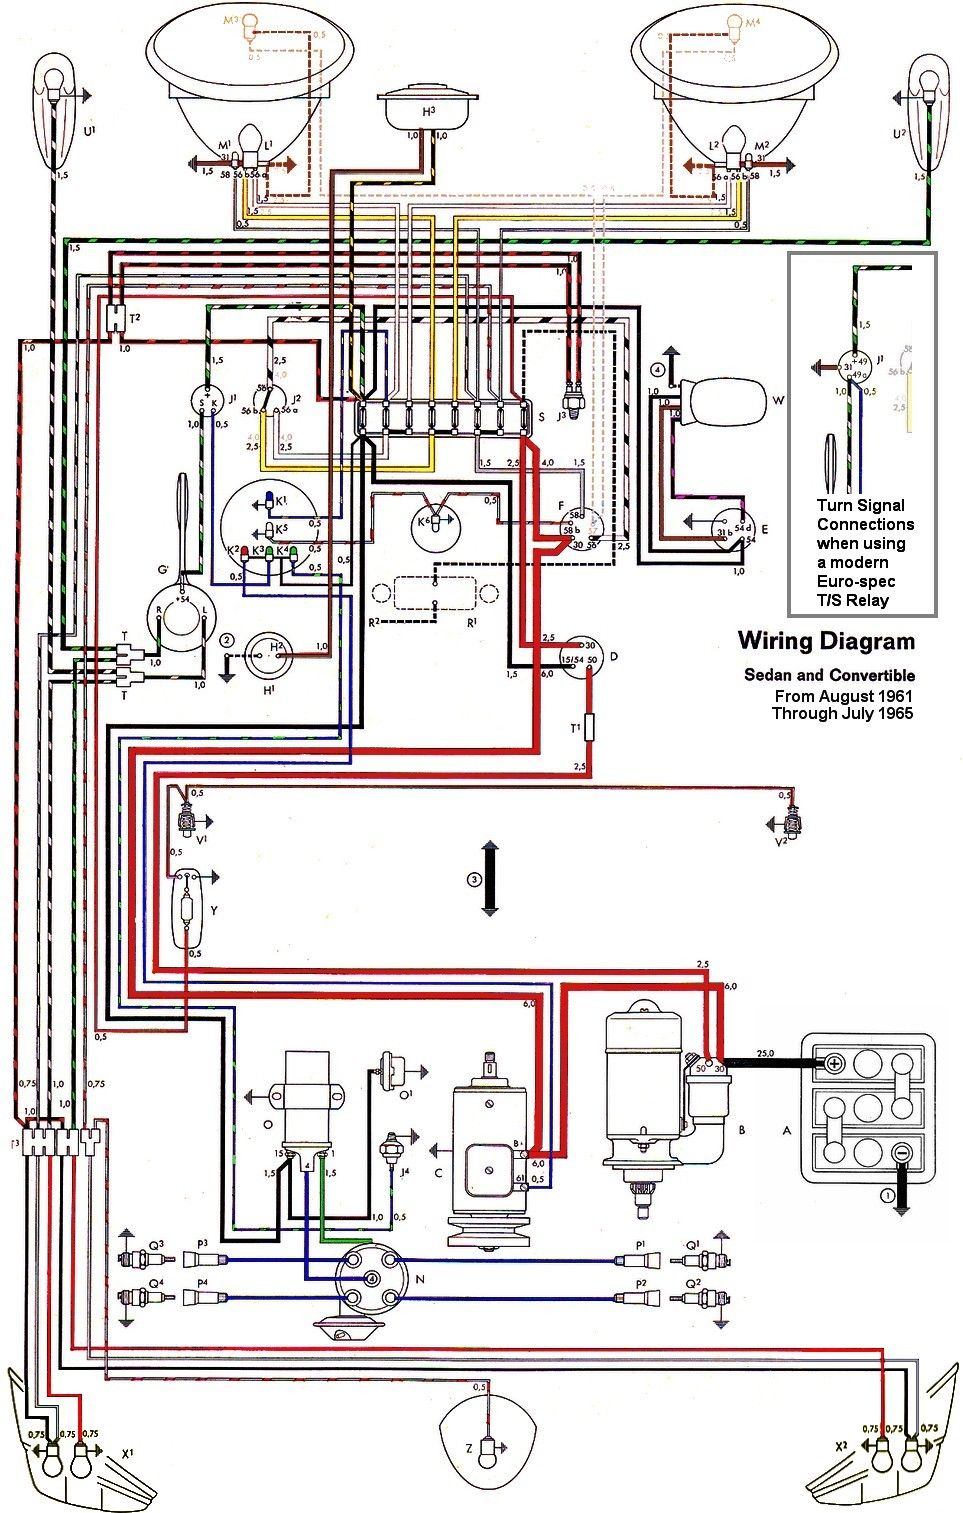 Vw Wiring Harness Diagram Guide And Troubleshooting Of Jetta Door Beetle Schematics Rh Ksefanzone Com 2006